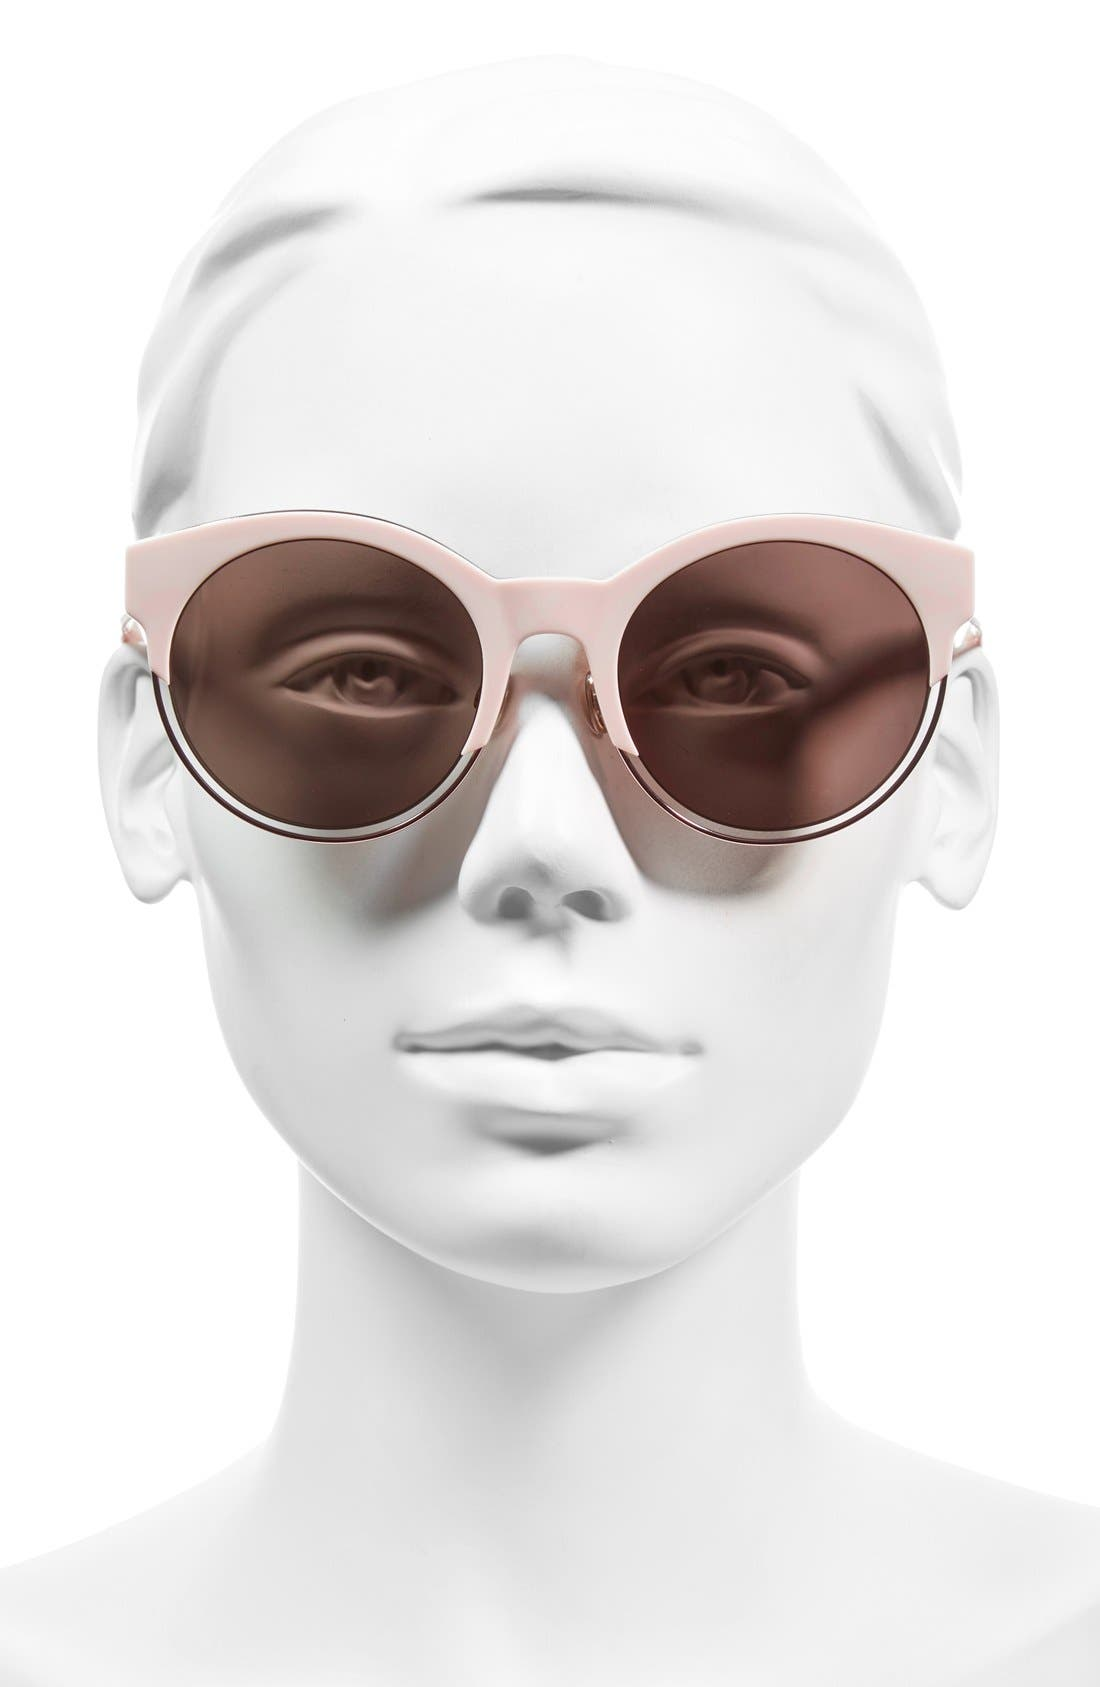 Siderall 1 53mm Round Sunglasses,                             Alternate thumbnail 18, color,